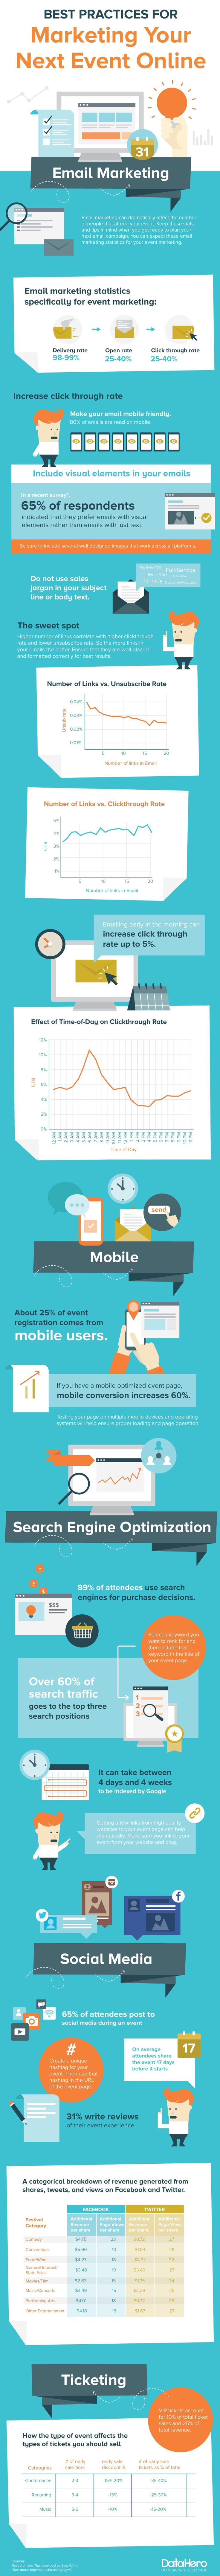 How to Successfully Market Your Next Event Online [Infographic], via @HubSpot. #eventprofs #marketing #marketingprofs #meetingprofs #socialmedia